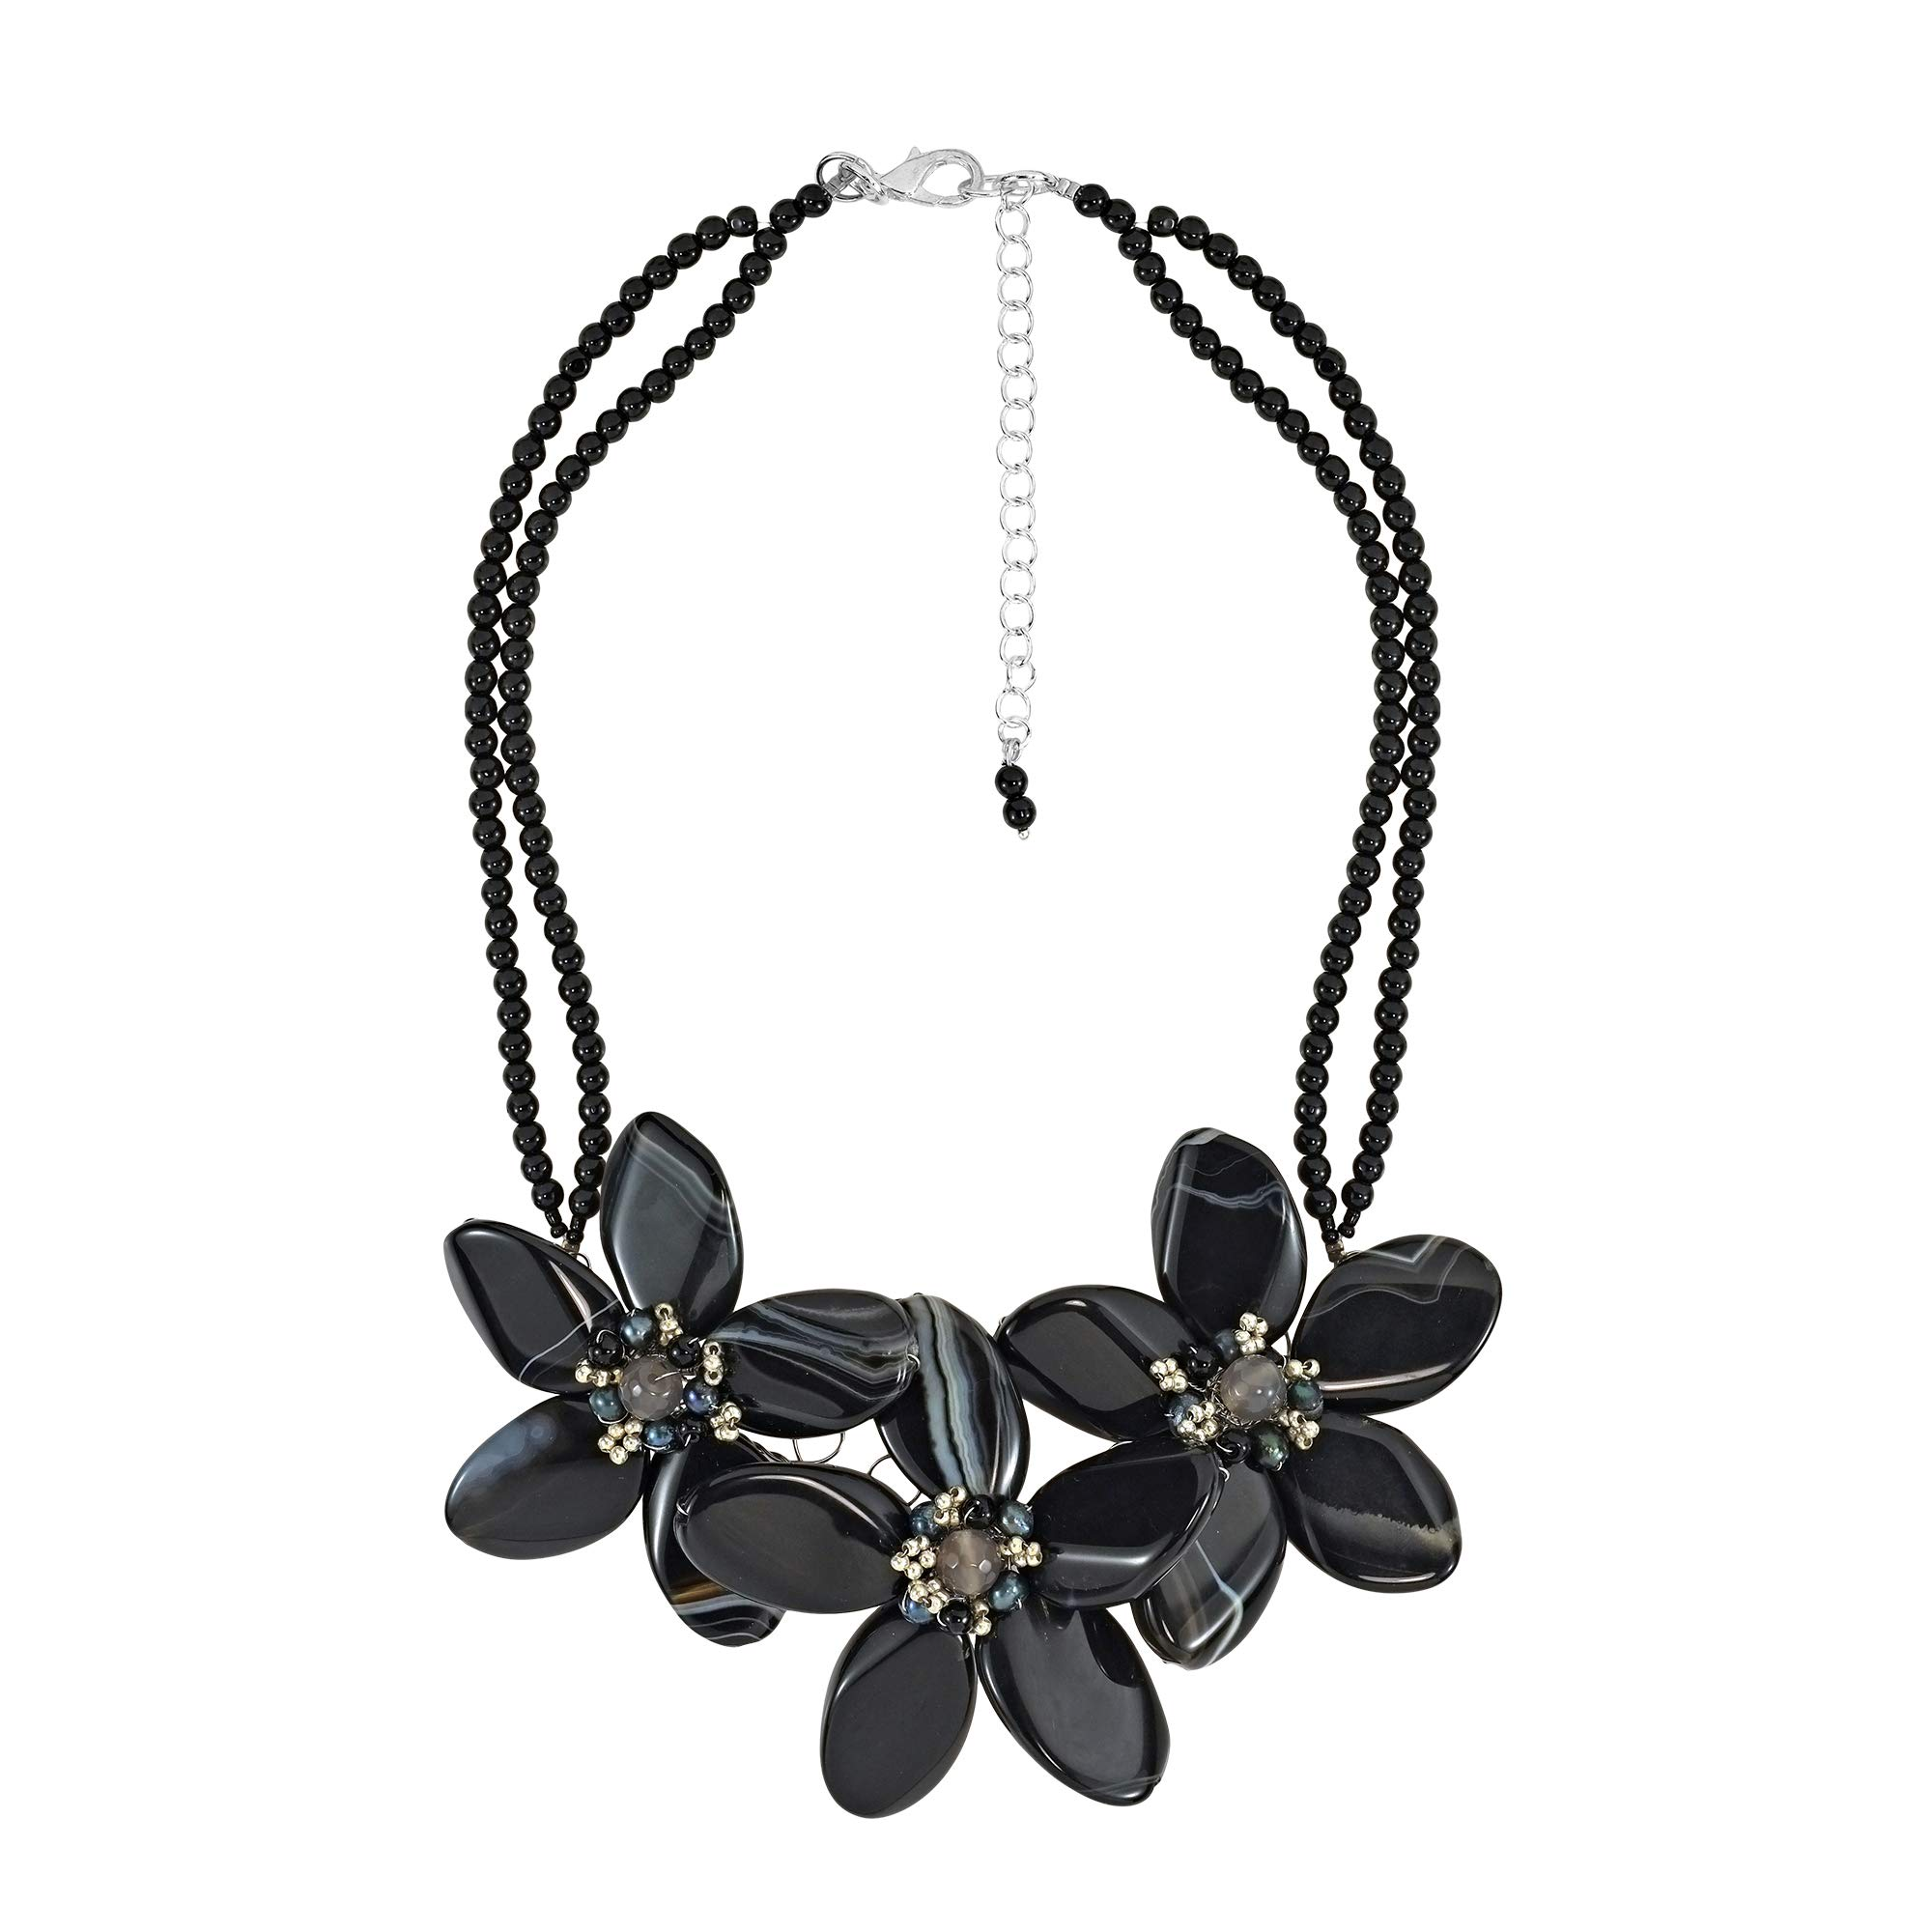 AeraVida Reconstructed Agate Flower & Cultured Freshwater Black Pearl Center Collar Necklace